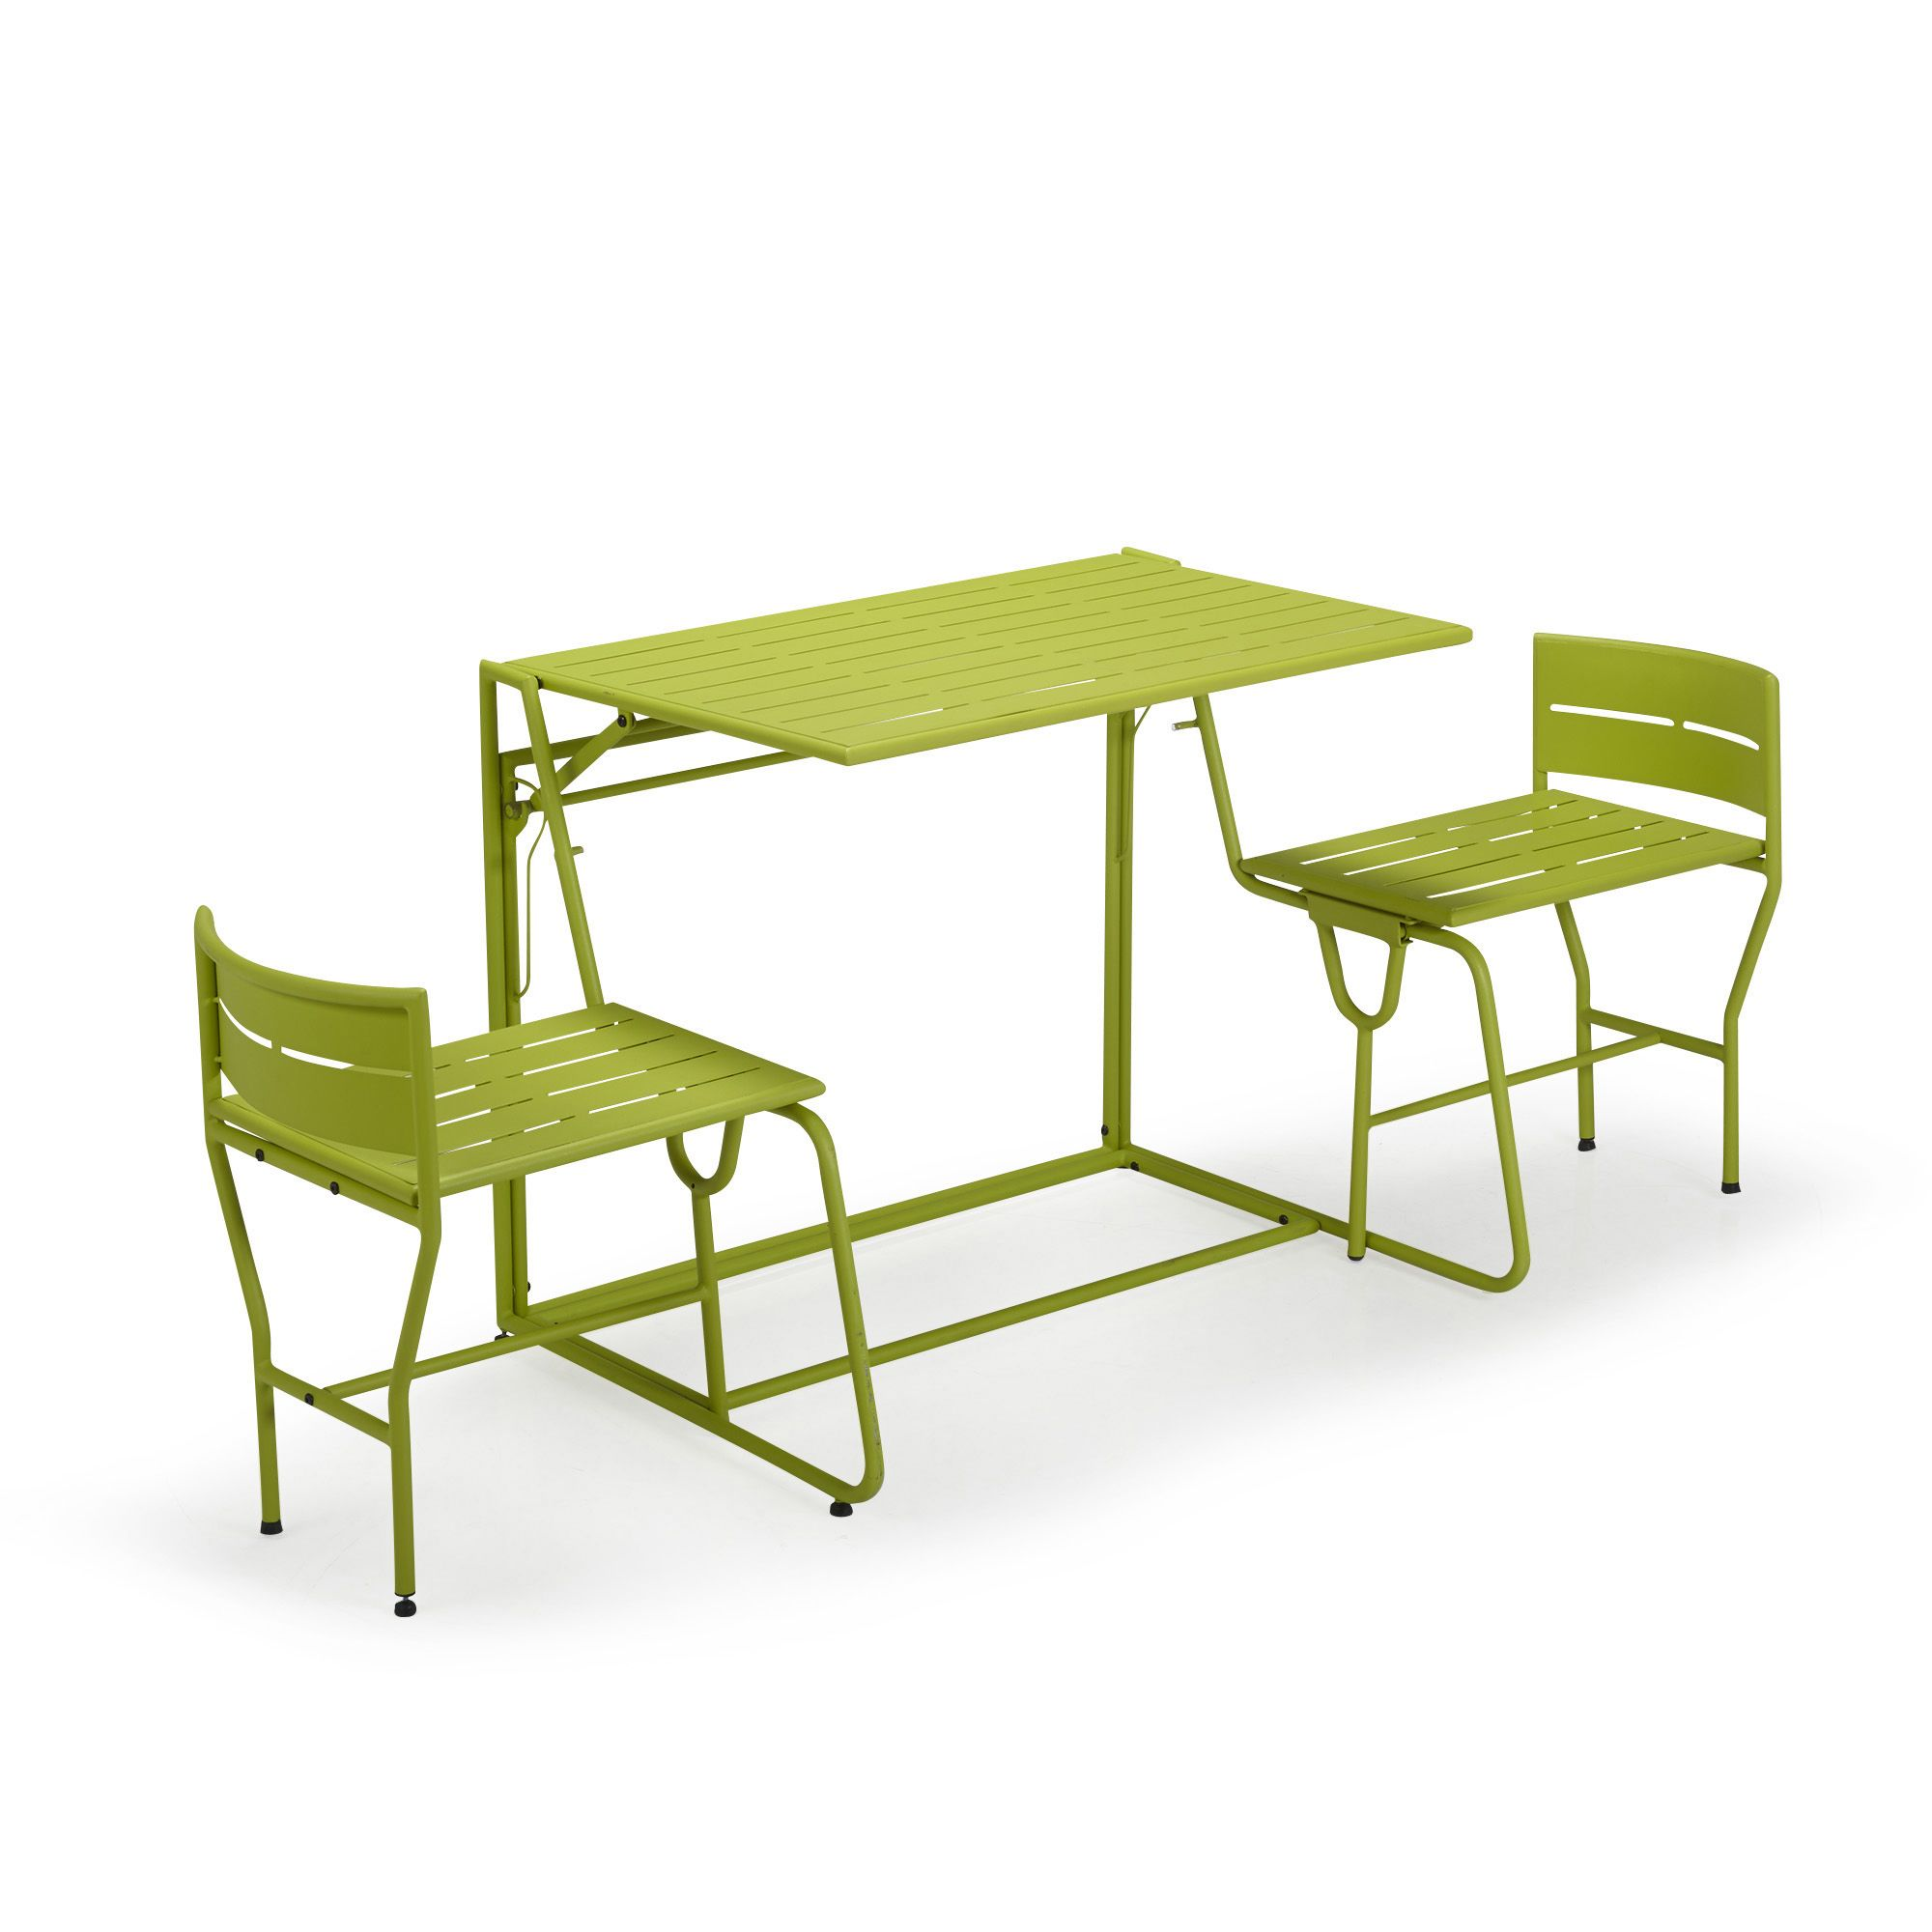 Picnic le salon de jardin balcon transformable 2 en 1 guten morgwen for Mini salon de jardin